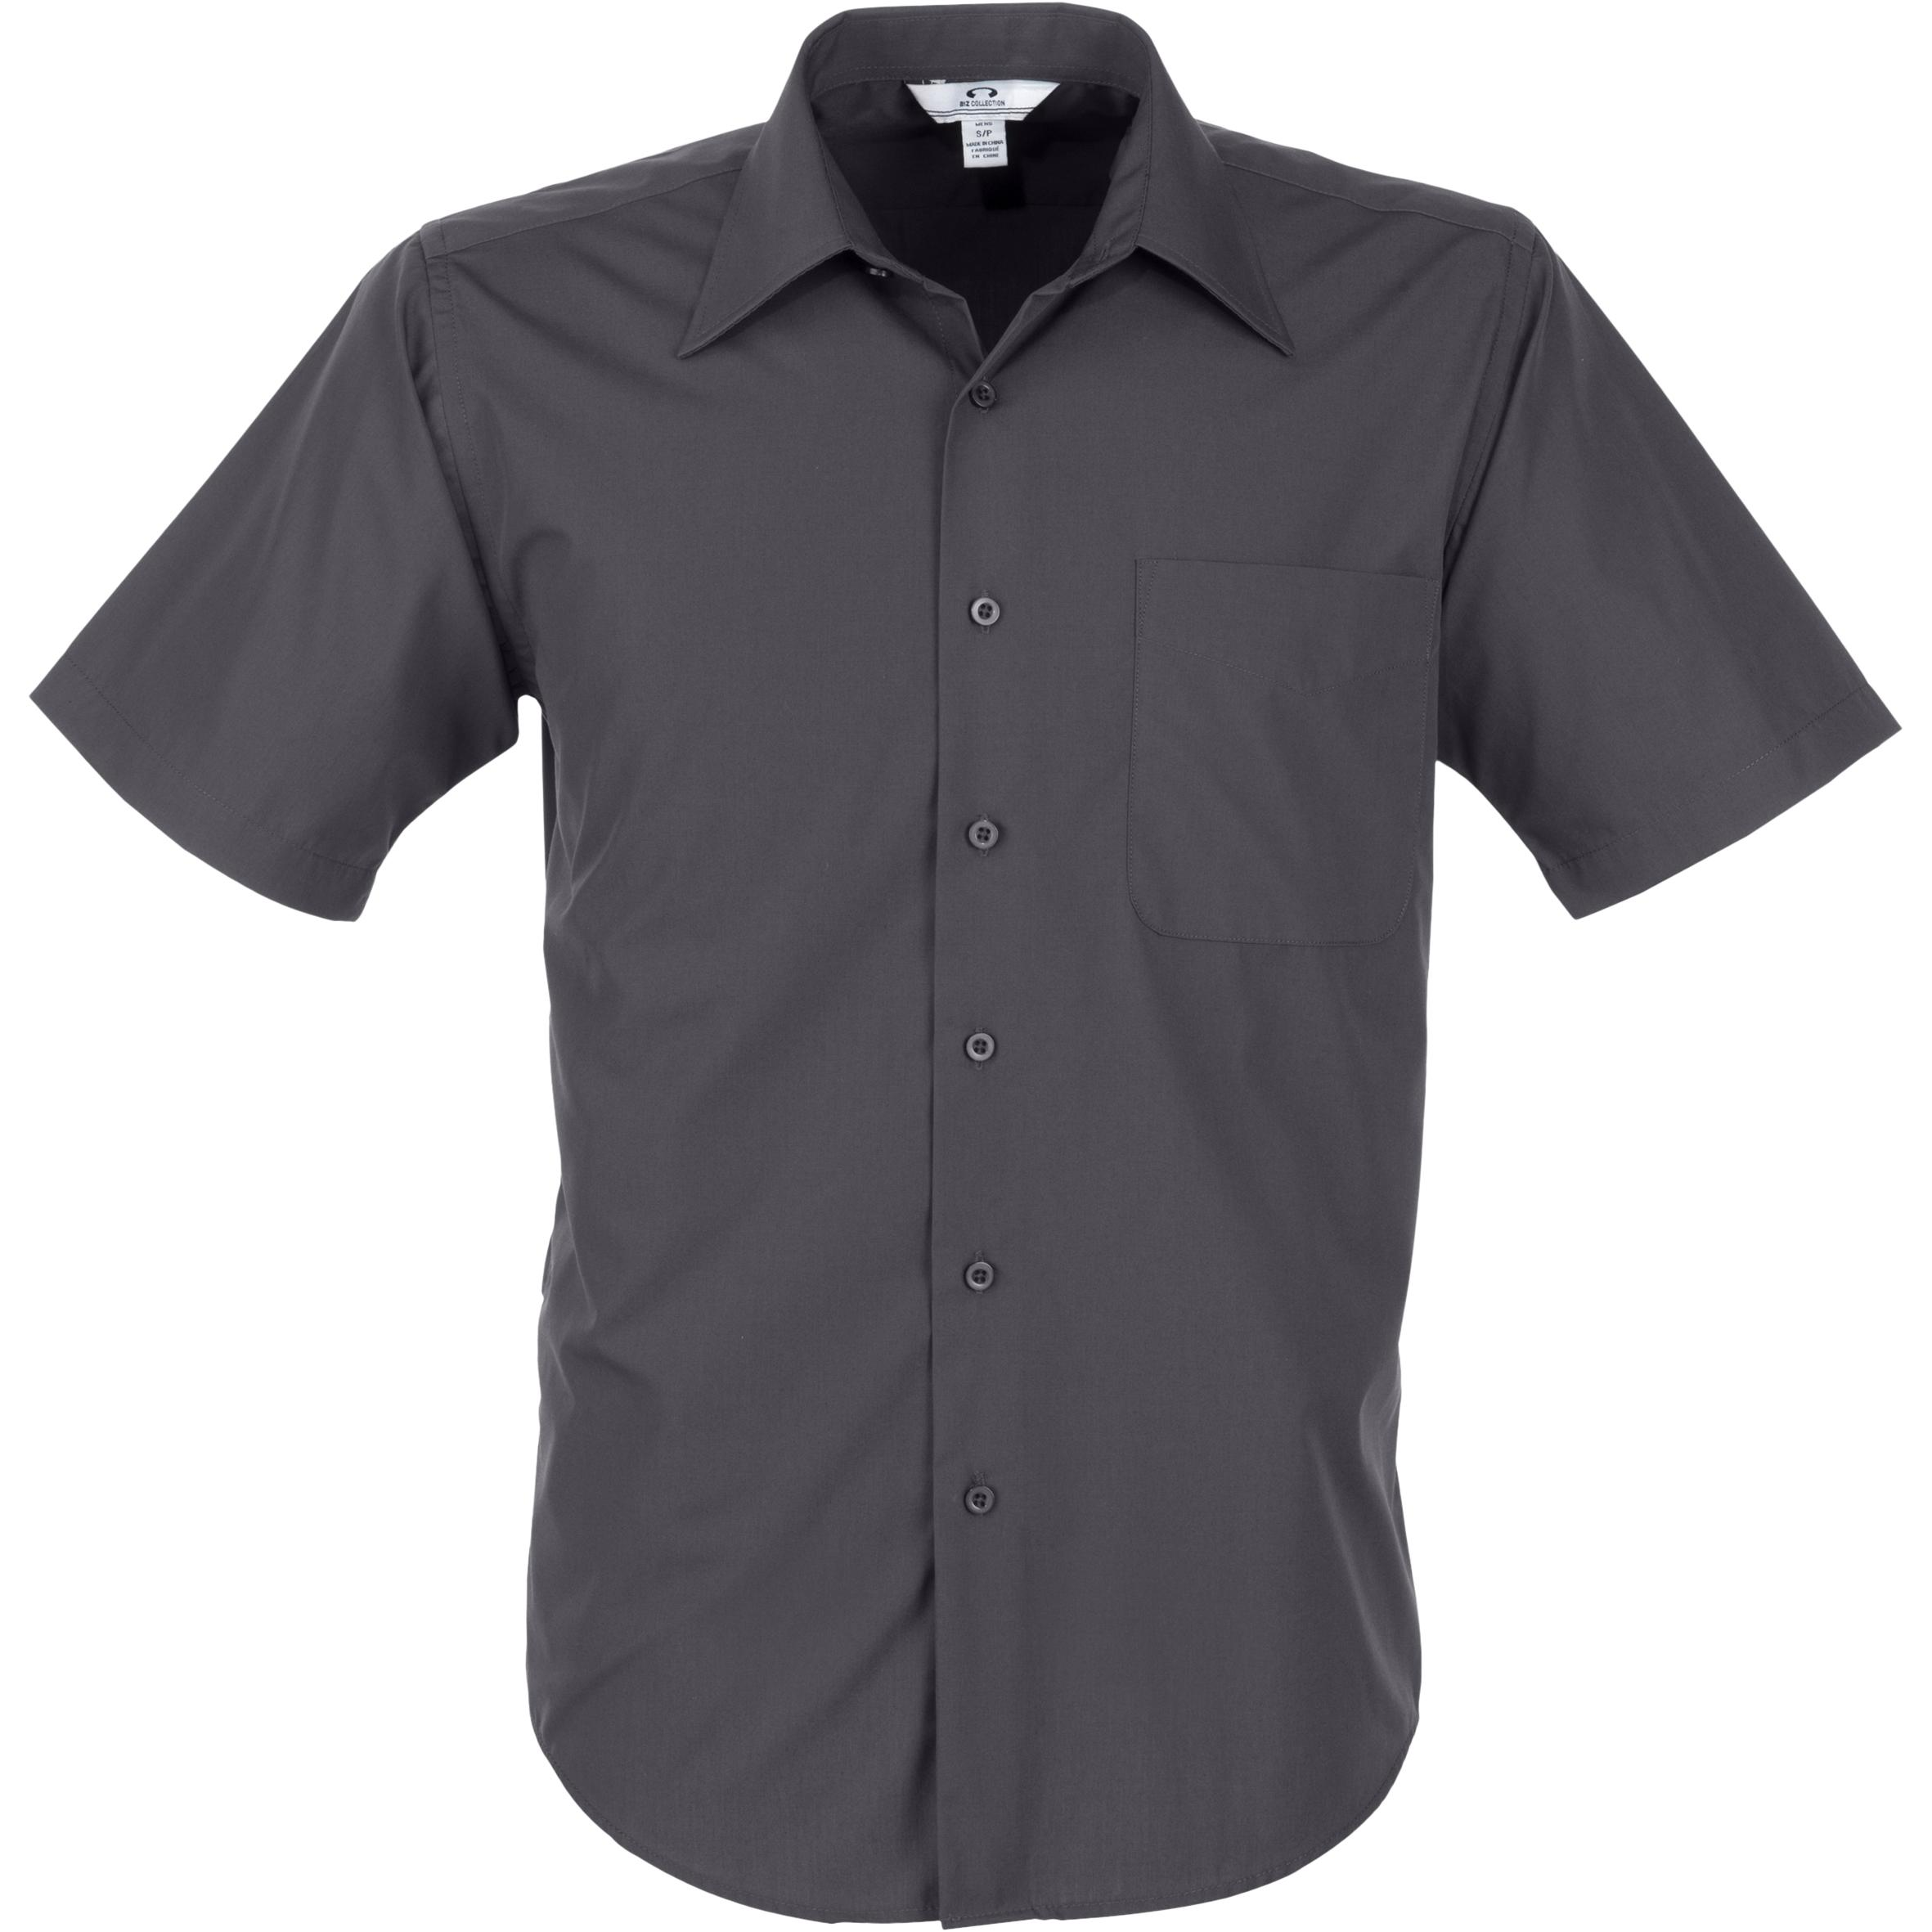 Mens Short Sleeve Metro Shirt - Grey Only